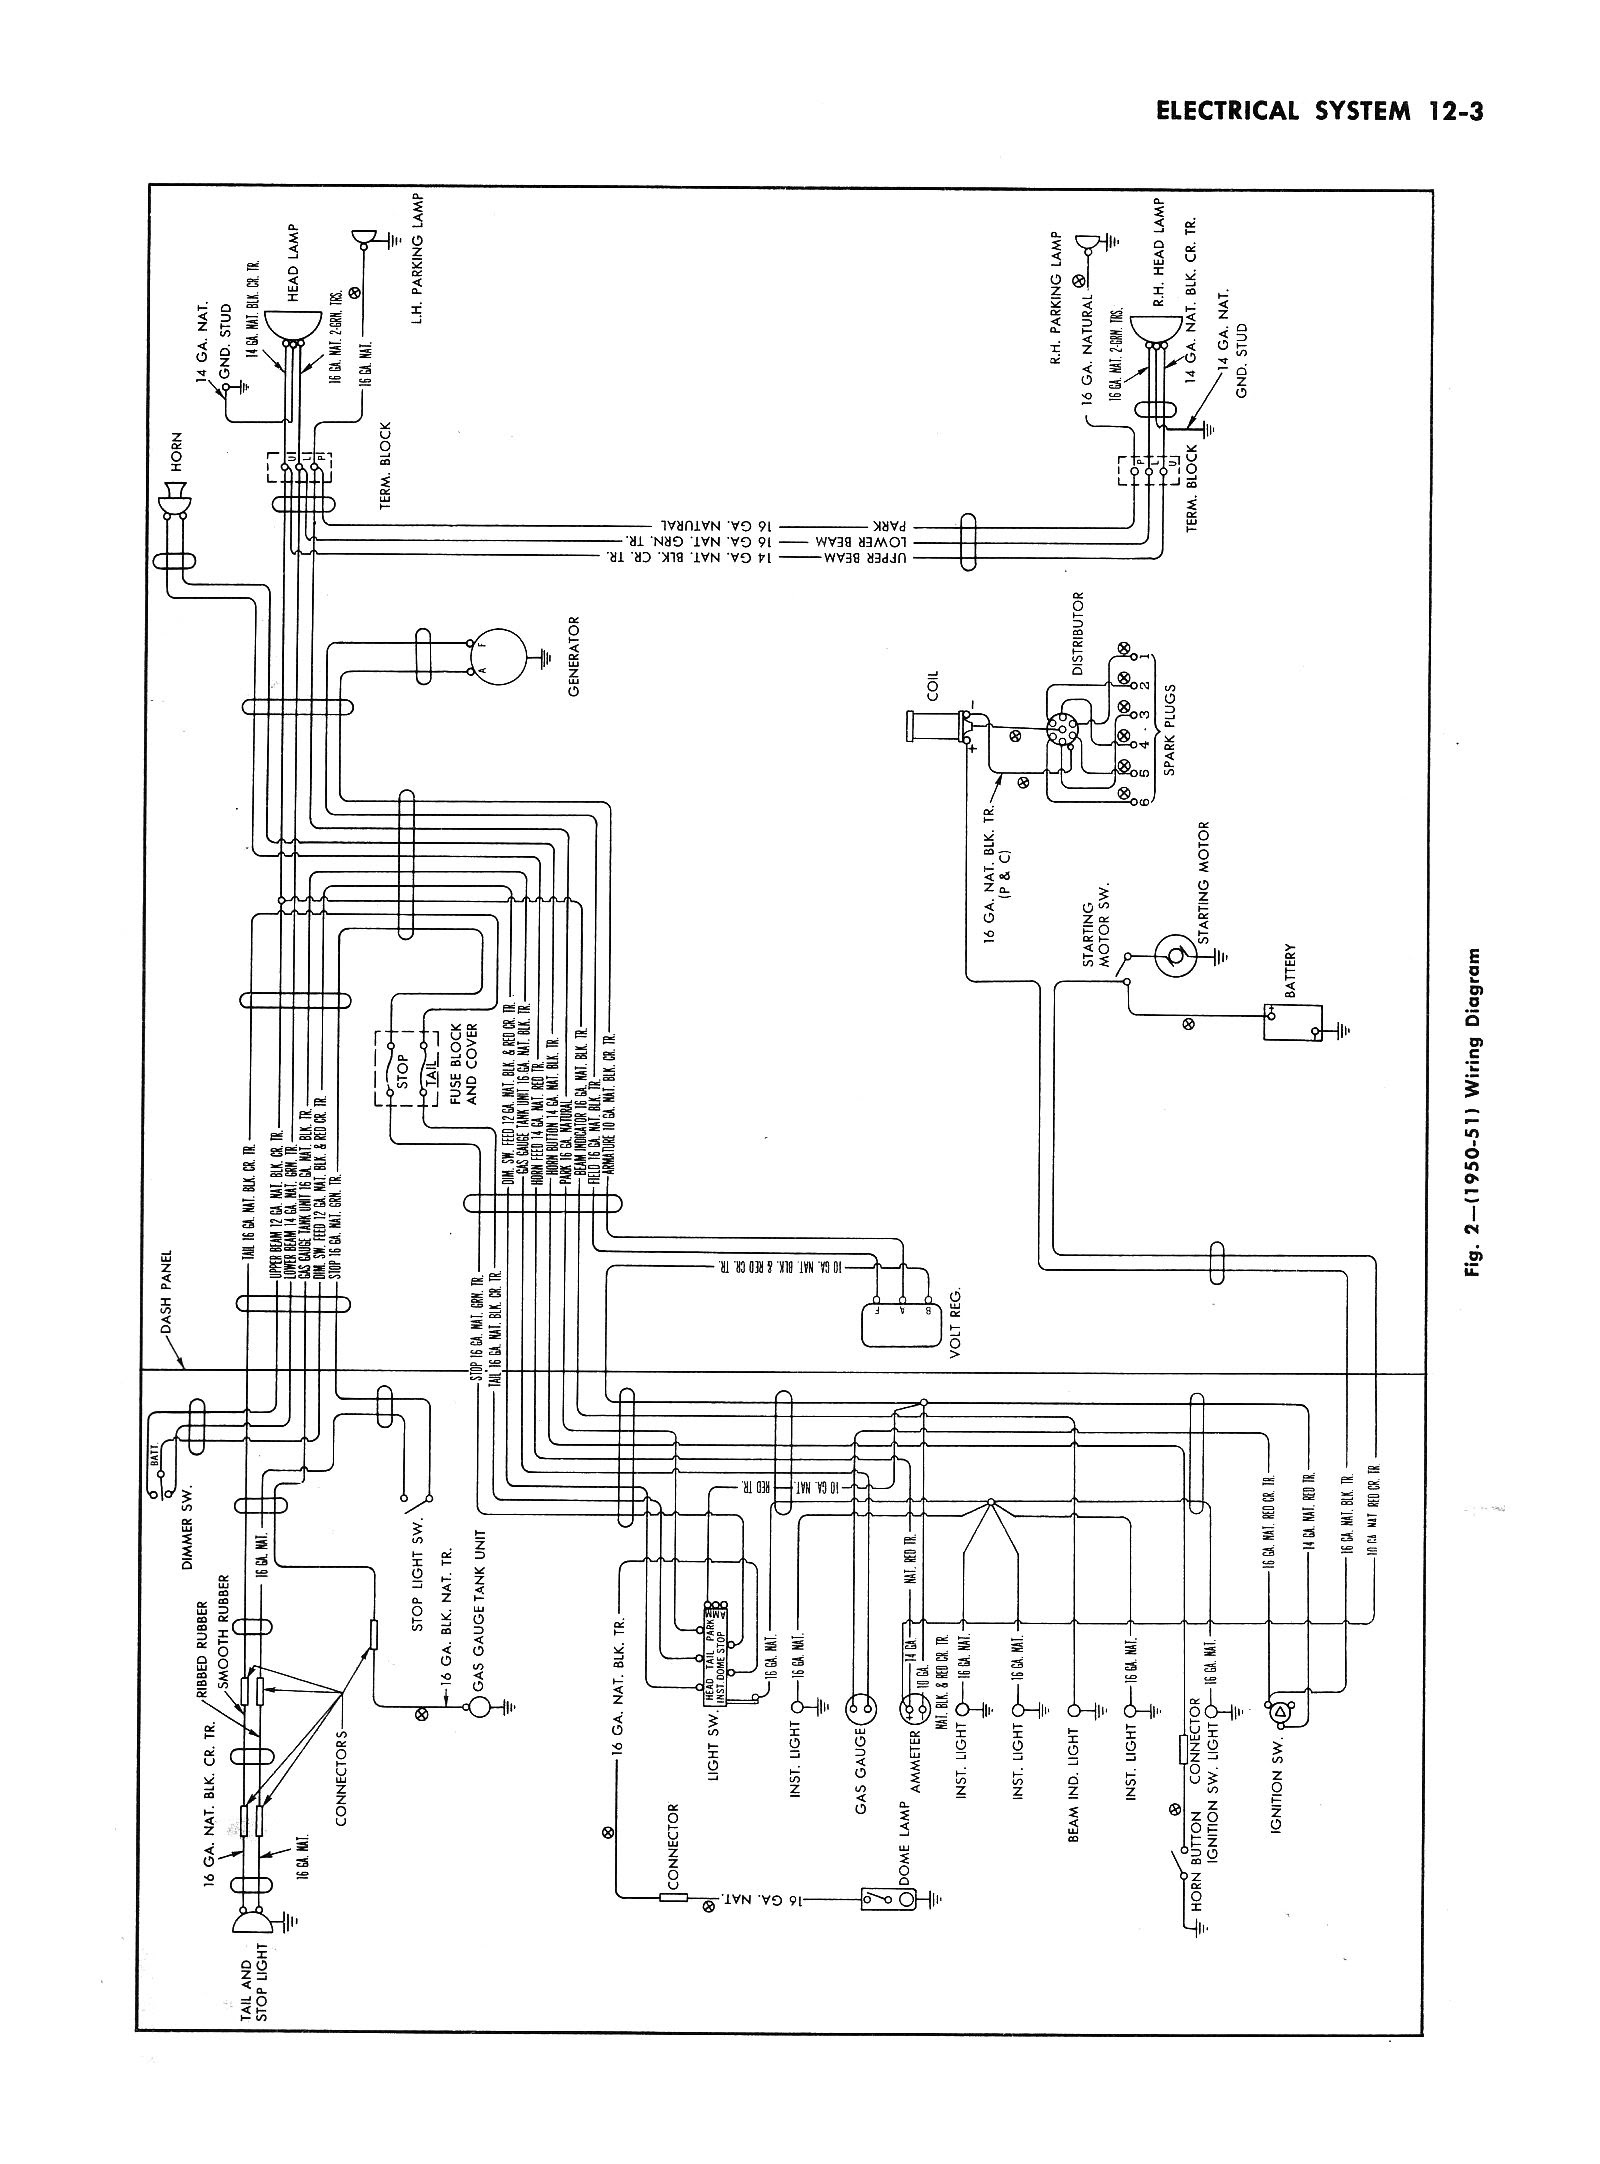 1954 International Trucks Wiring Diagram Wiring Diagrams Recover Recover Chatteriedelavalleedufelin Fr